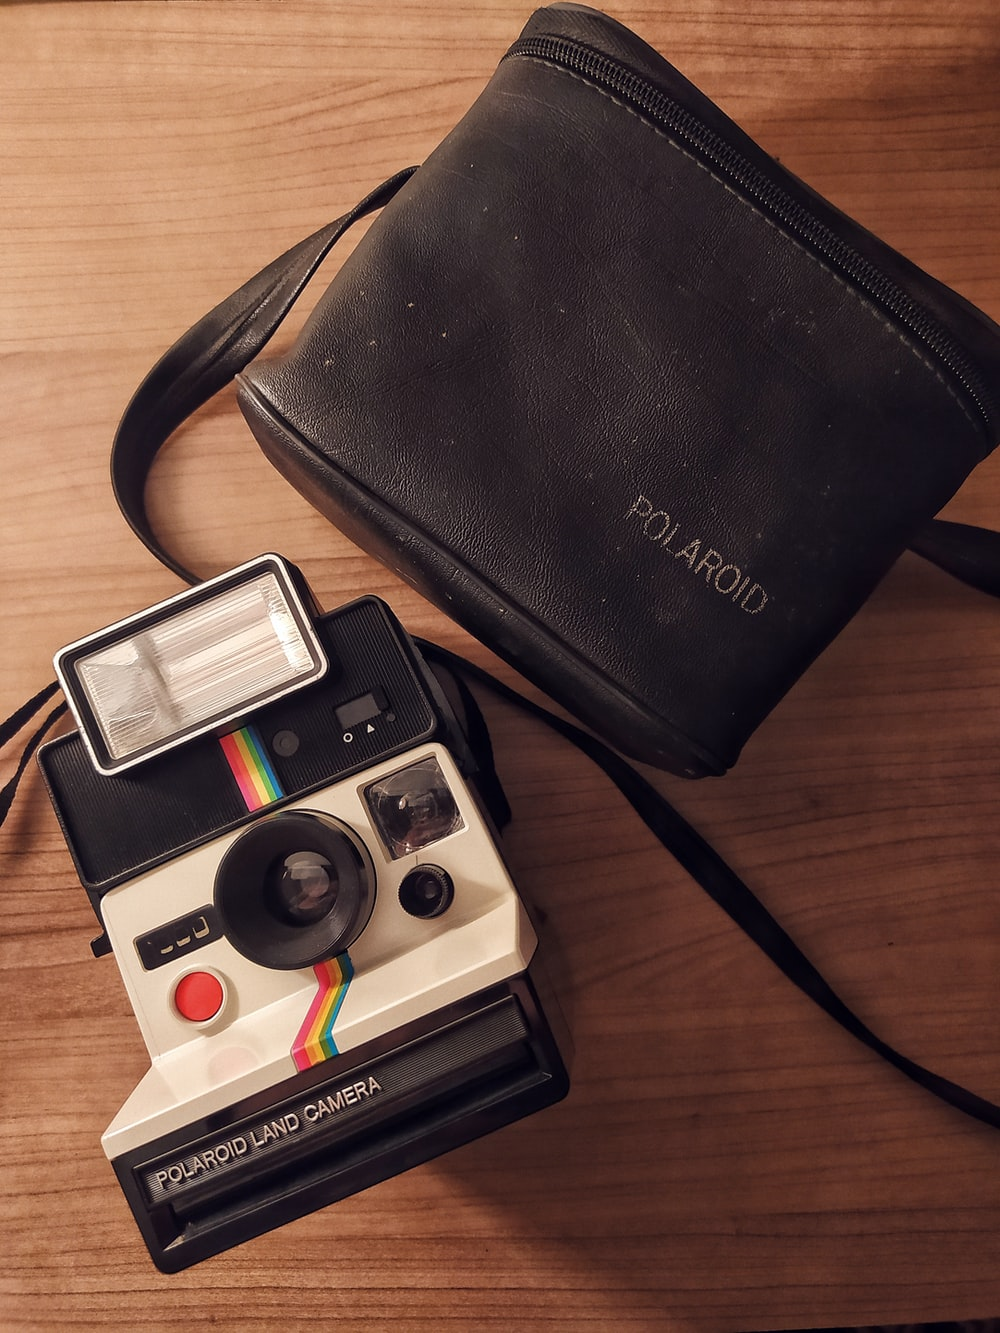 black and white polaroid camera beside black leather bifold wallet